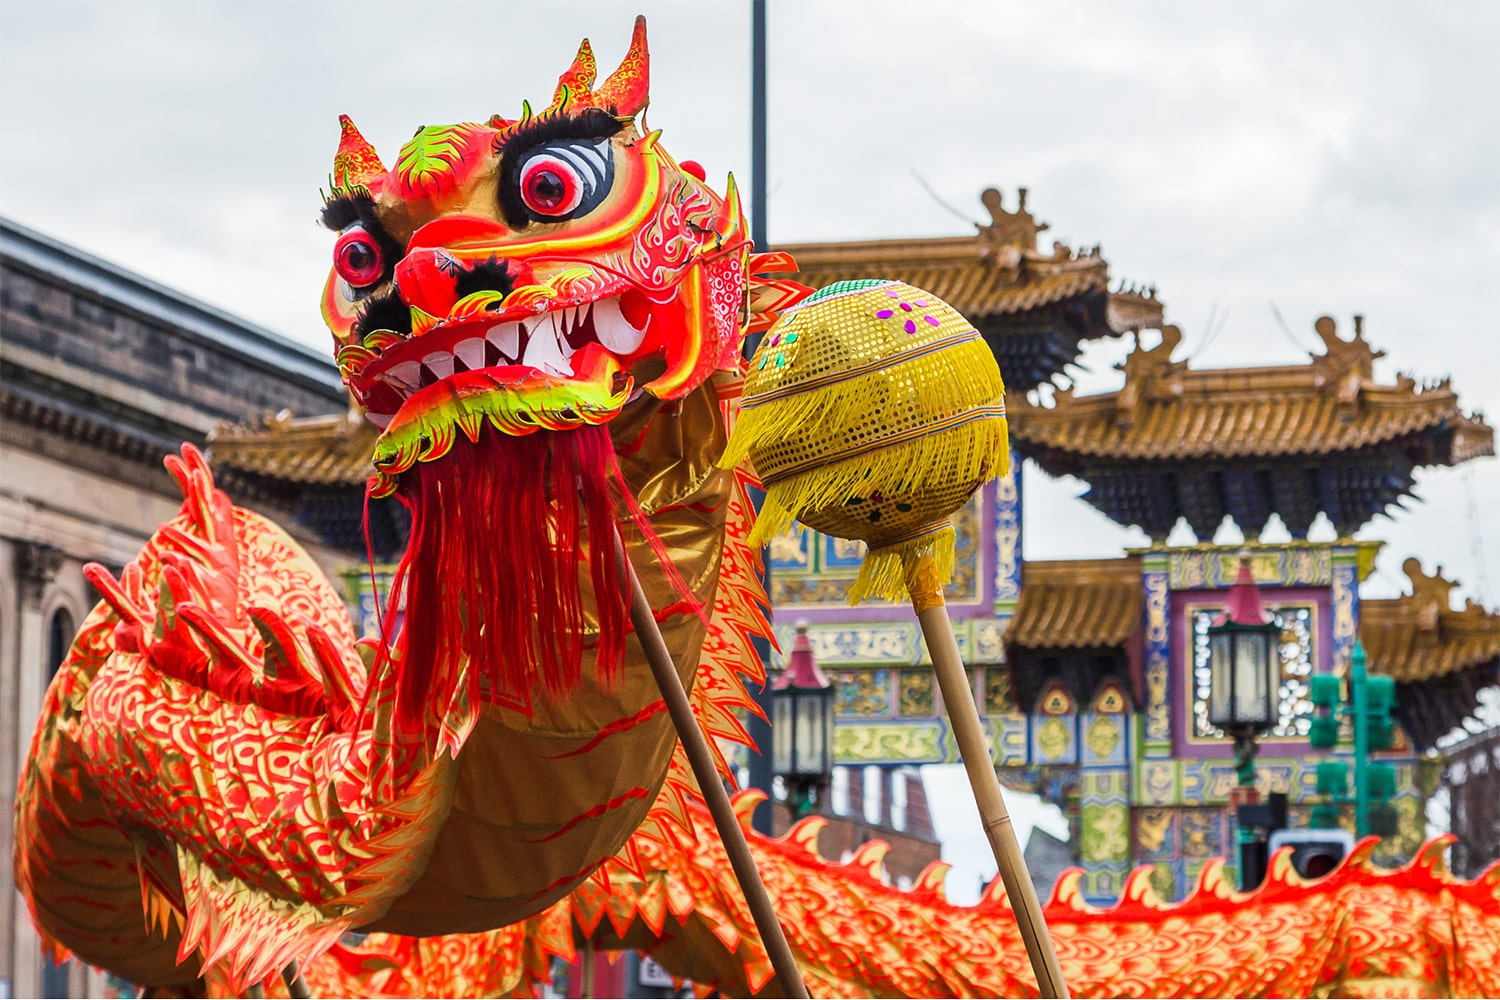 Prepare your dropshipping business for the Chinese New Year